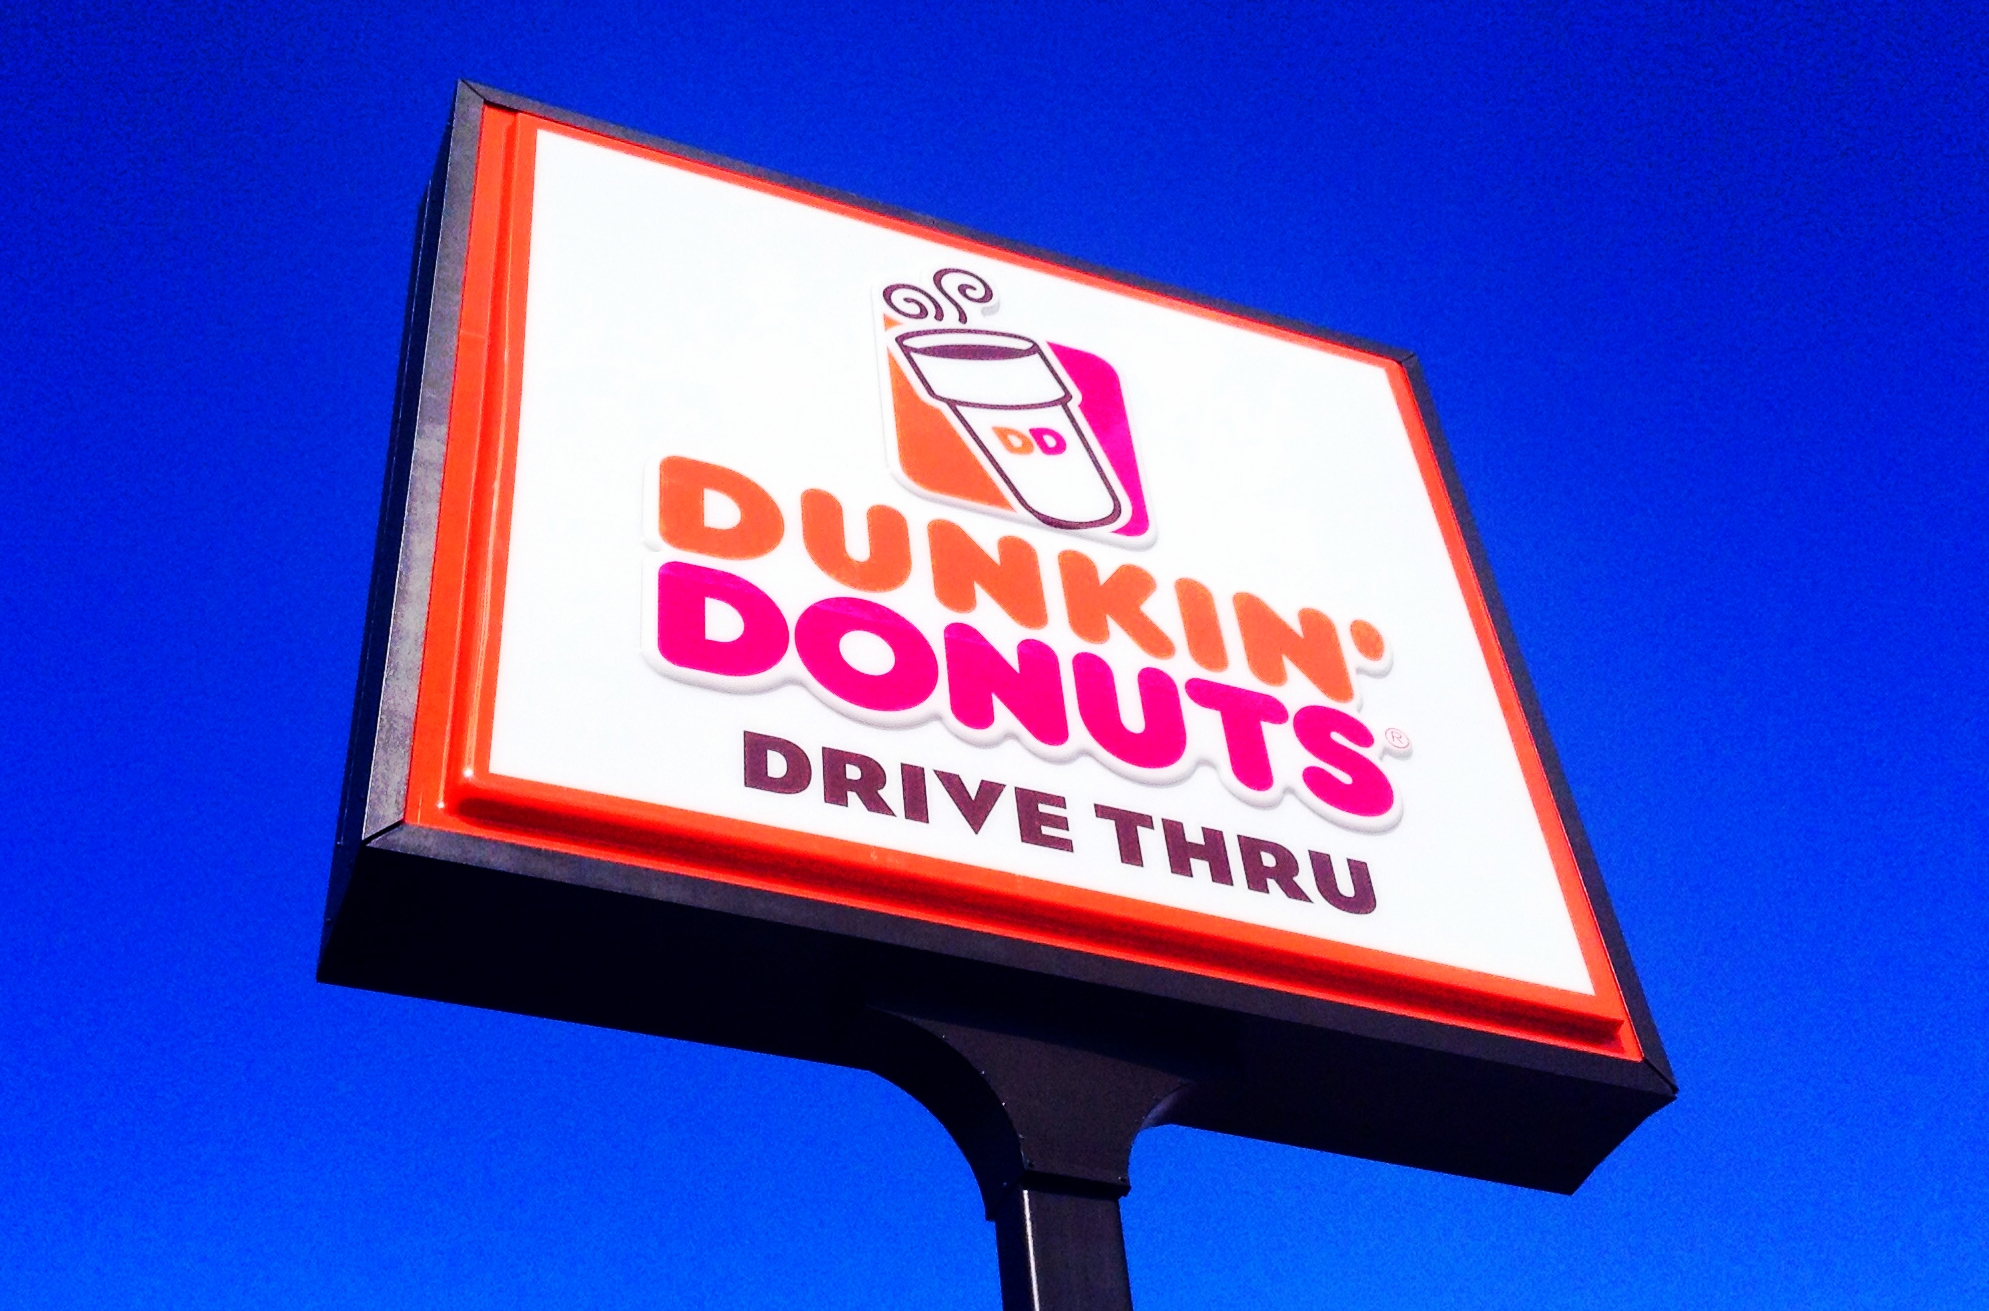 EC: Dunkin' Donuts Sent a Cease-and-Desist to a Small Coffee Shop